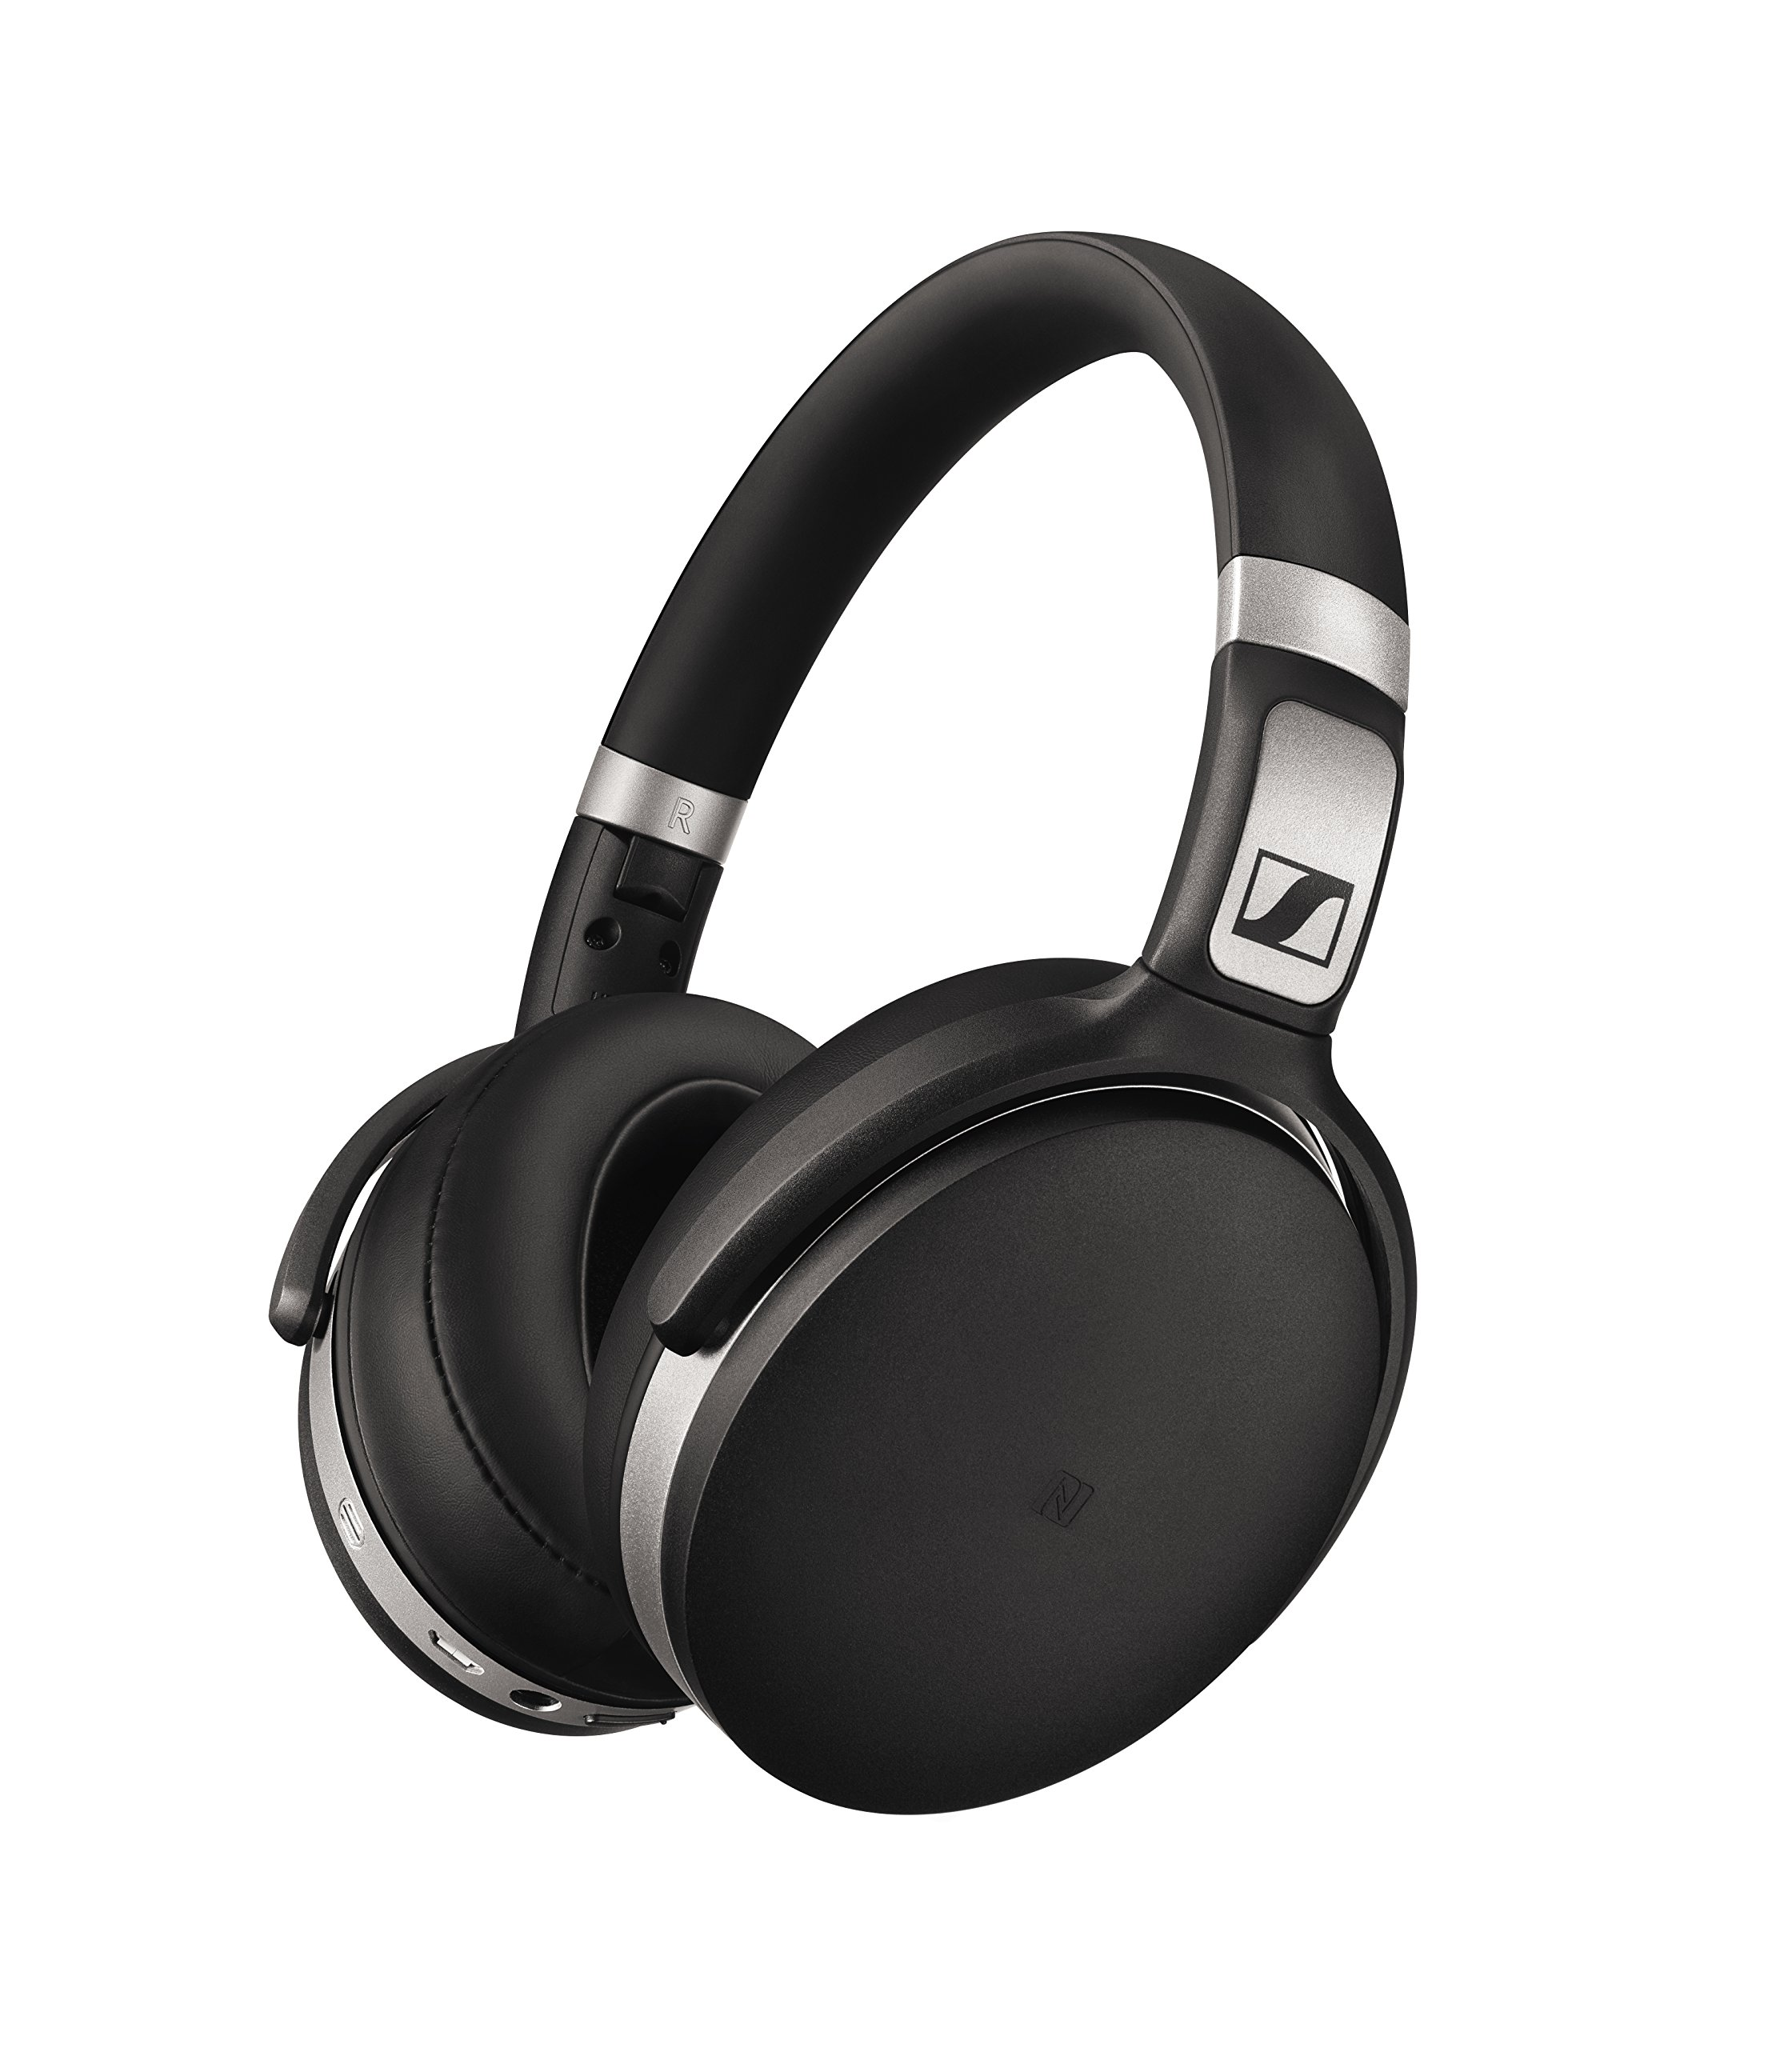 Sennheiser HD 4.50 Bluetooth Wireless Headphones with Active Noise Cancellation, Black and Silver(HD 4.50 BTNC) by Sennheiser Consumer Audio